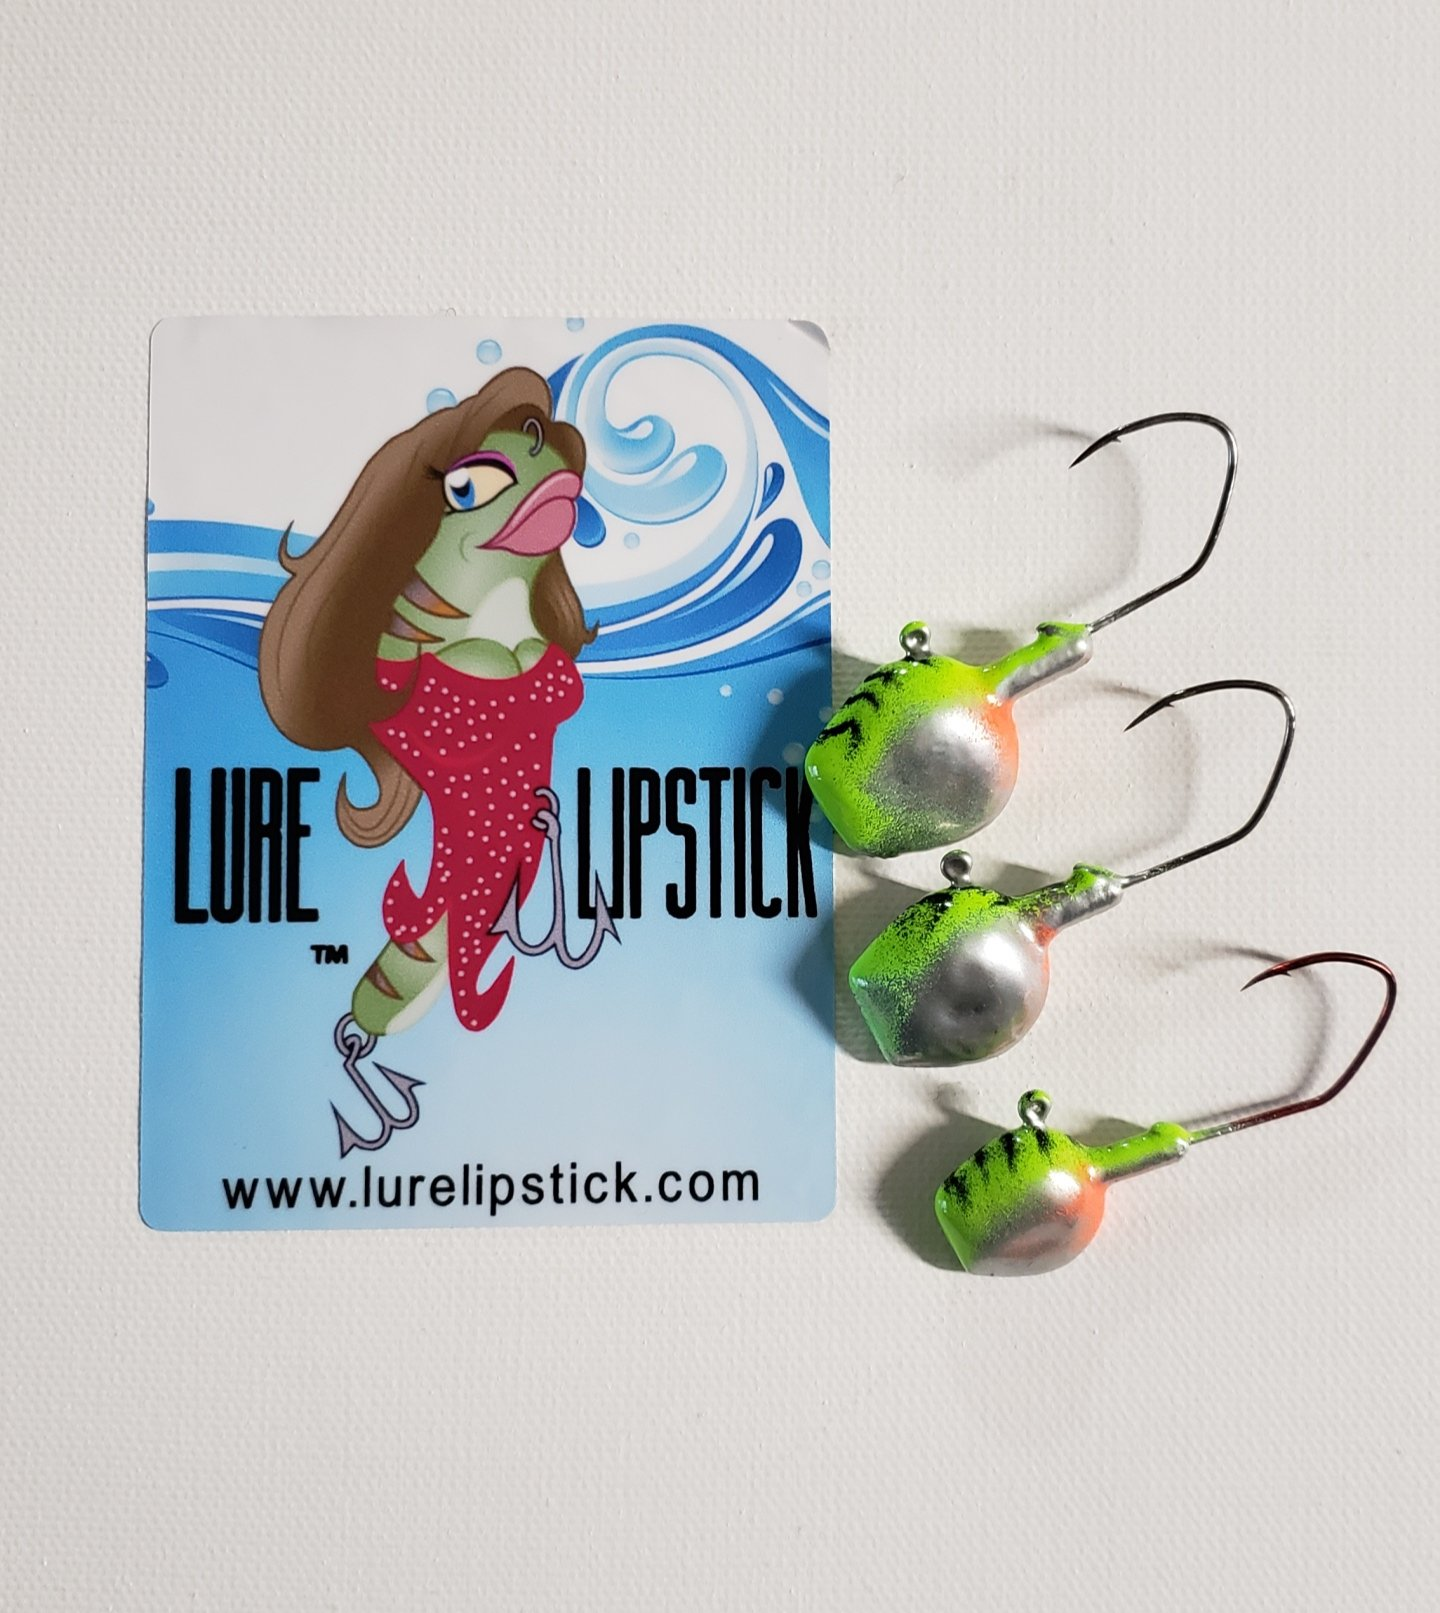 Wal-E-Gat-R Custom Jig Heads 3 Pack Sold by Lure Lipstick - Ice Perch